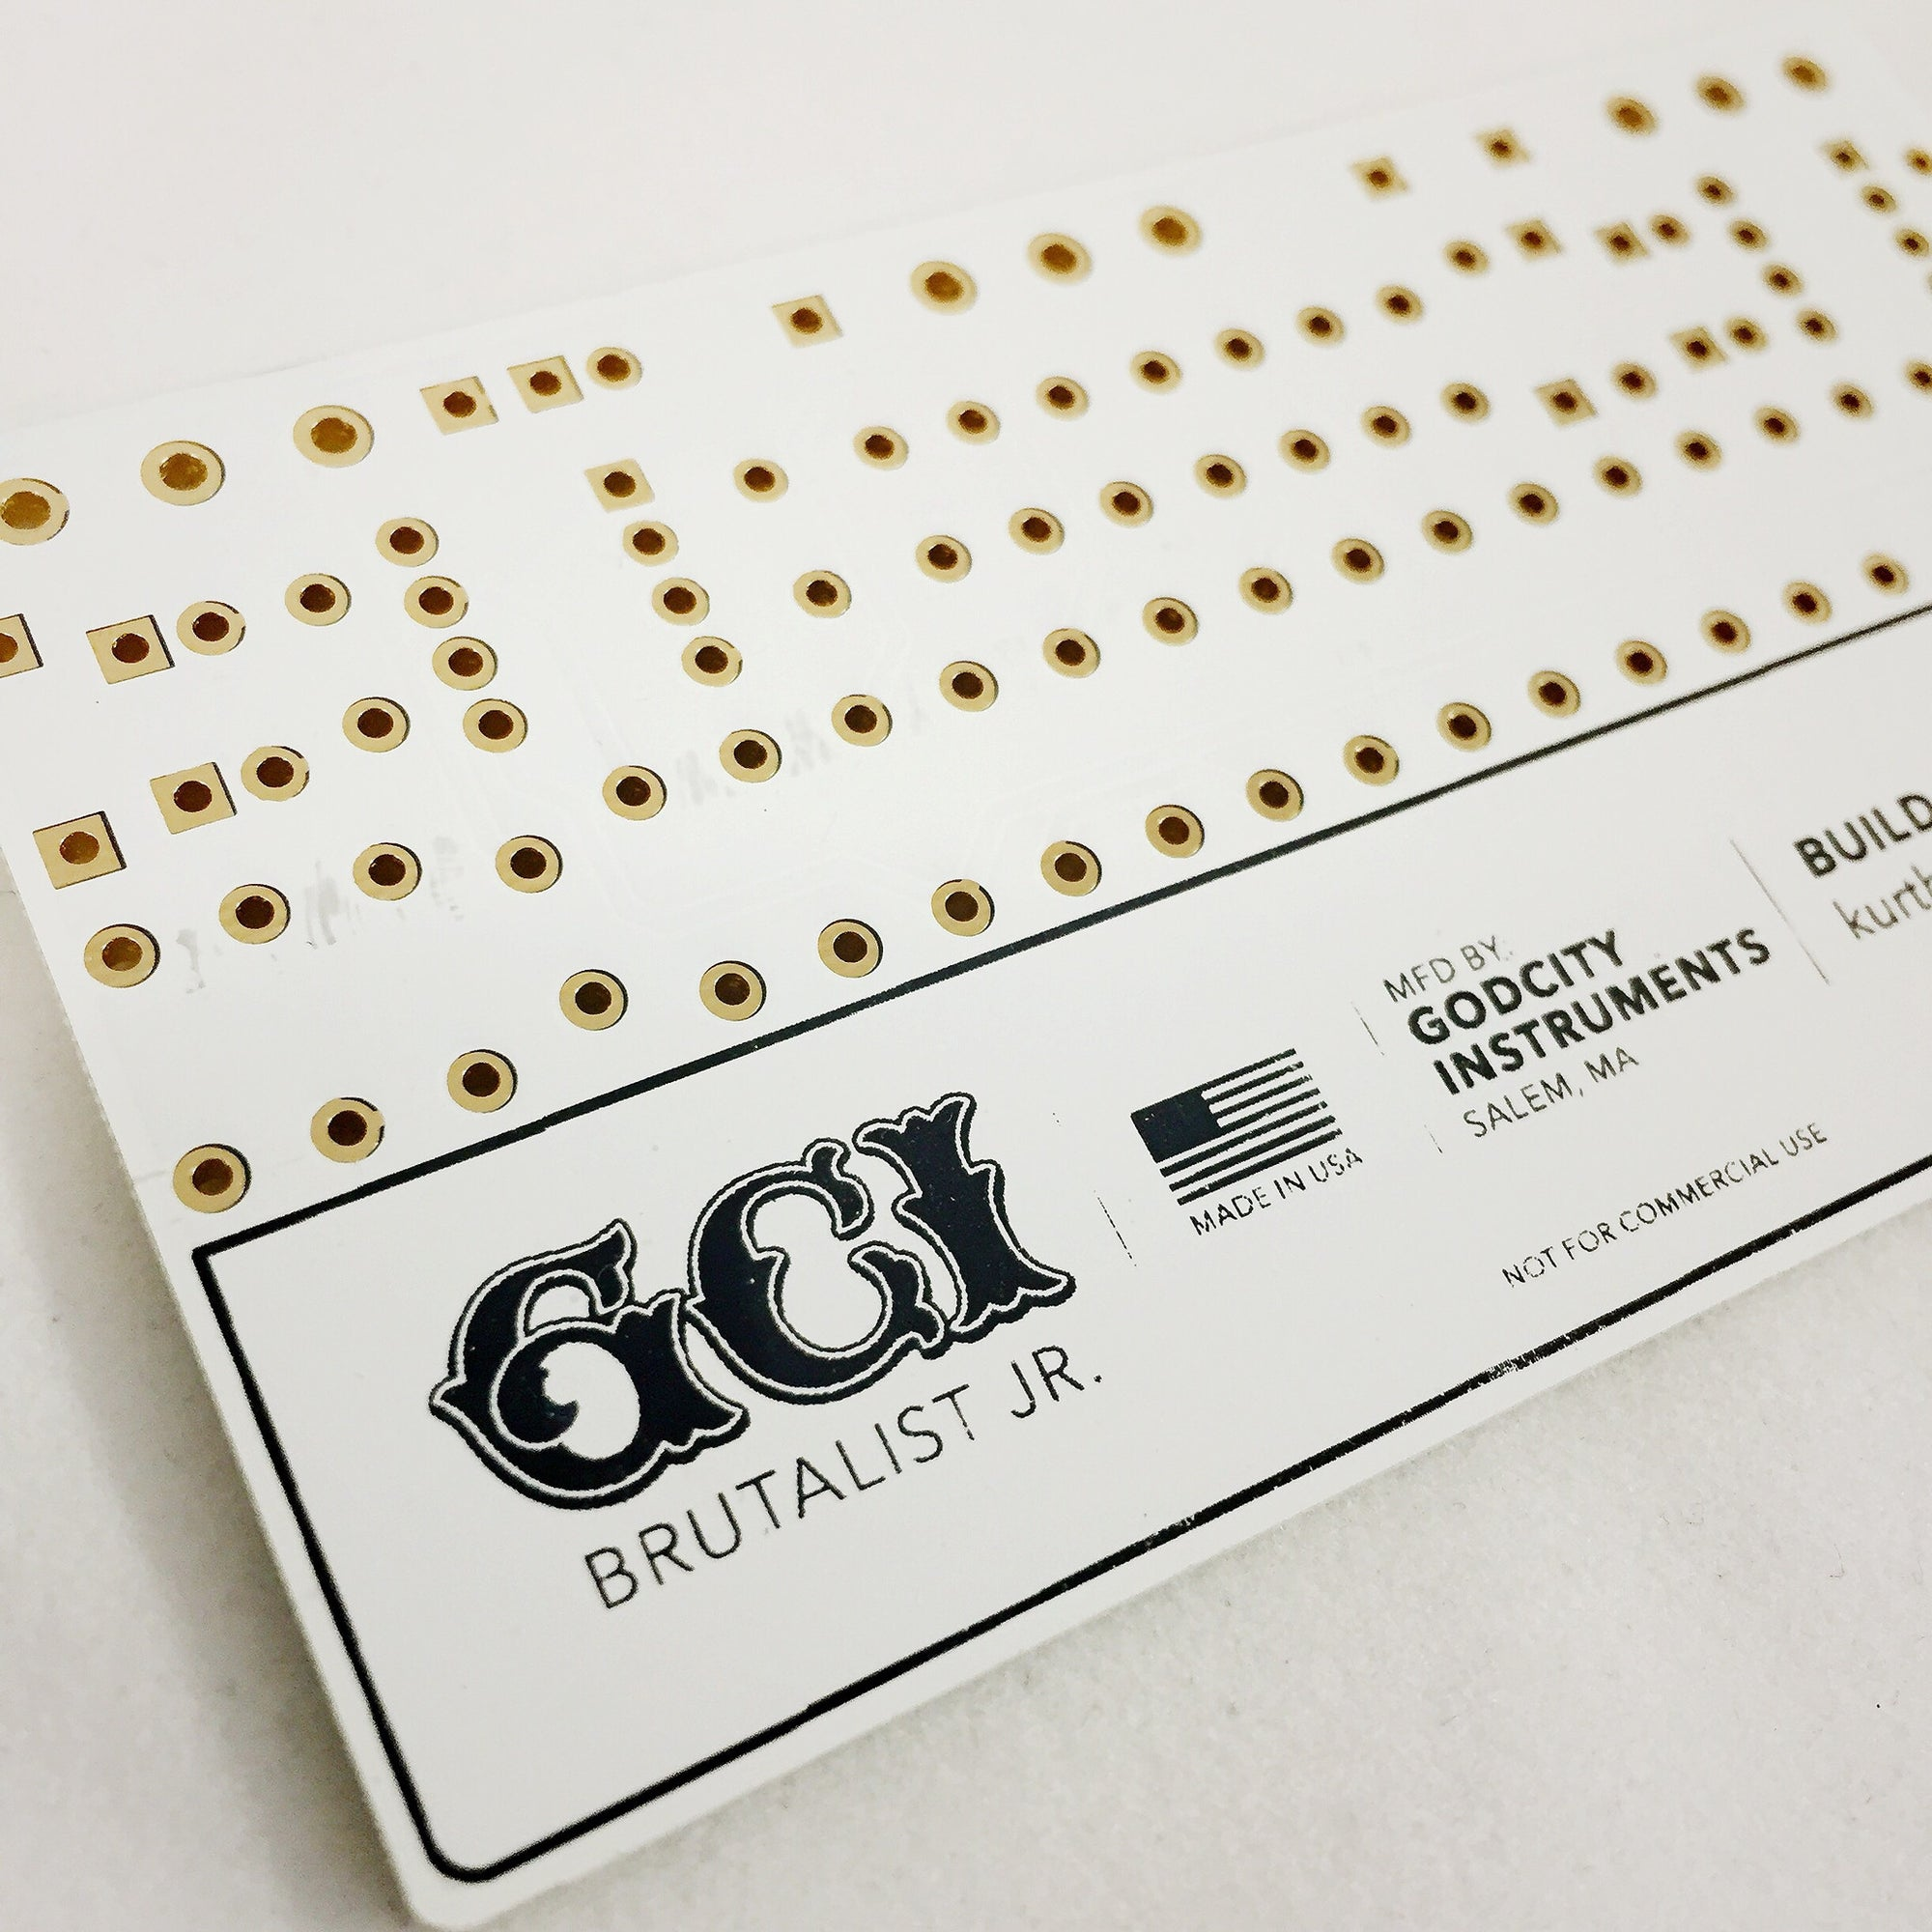 Godcity Printed Circuit Board Business Card - Deathwish Inc